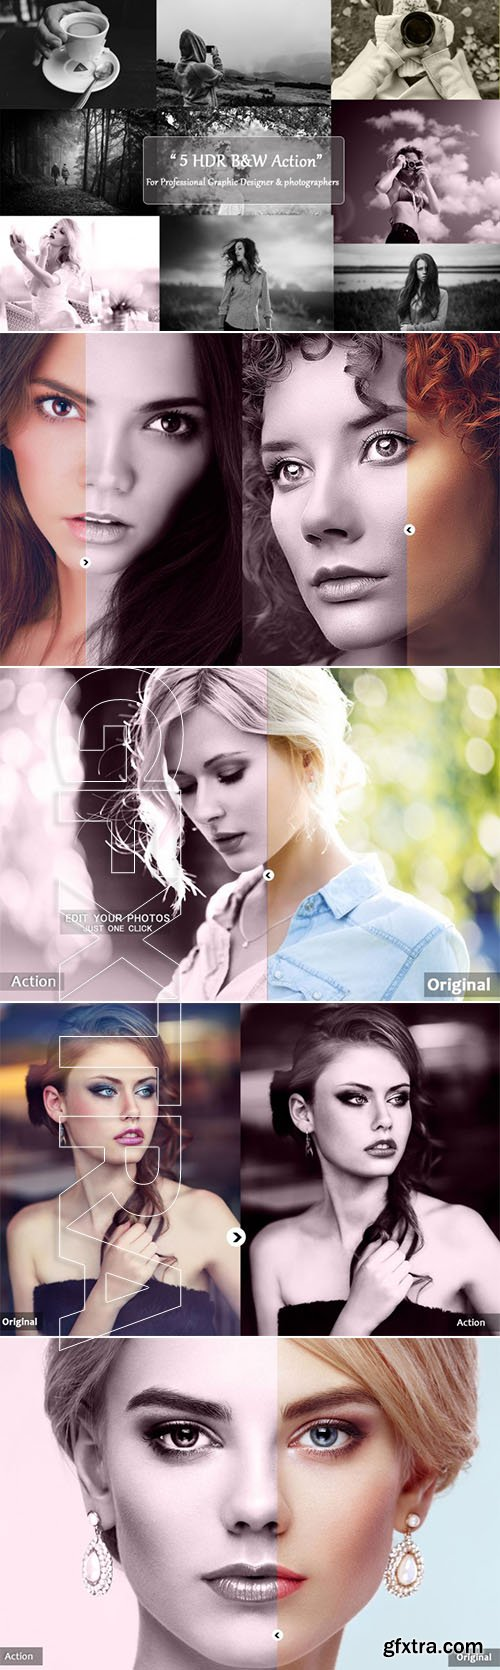 Graphicriver - 05 HDR B&W Action